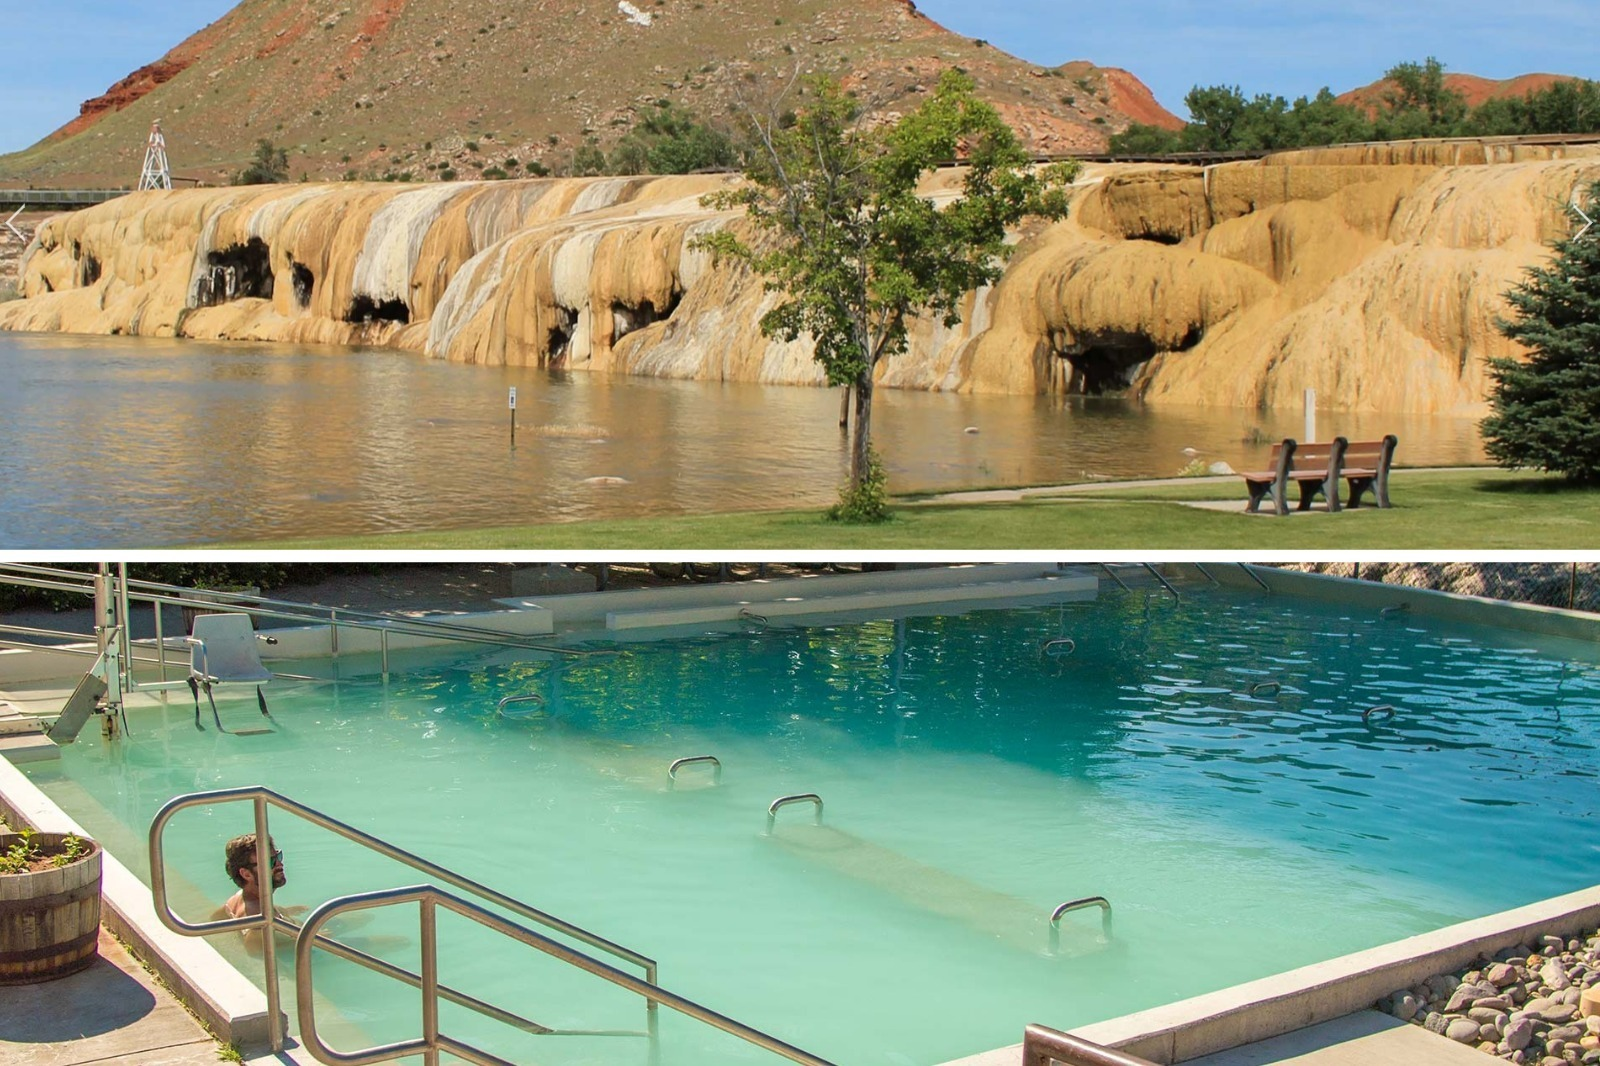 Thermopolis has rainbow terraces and hot springs in Wyoming